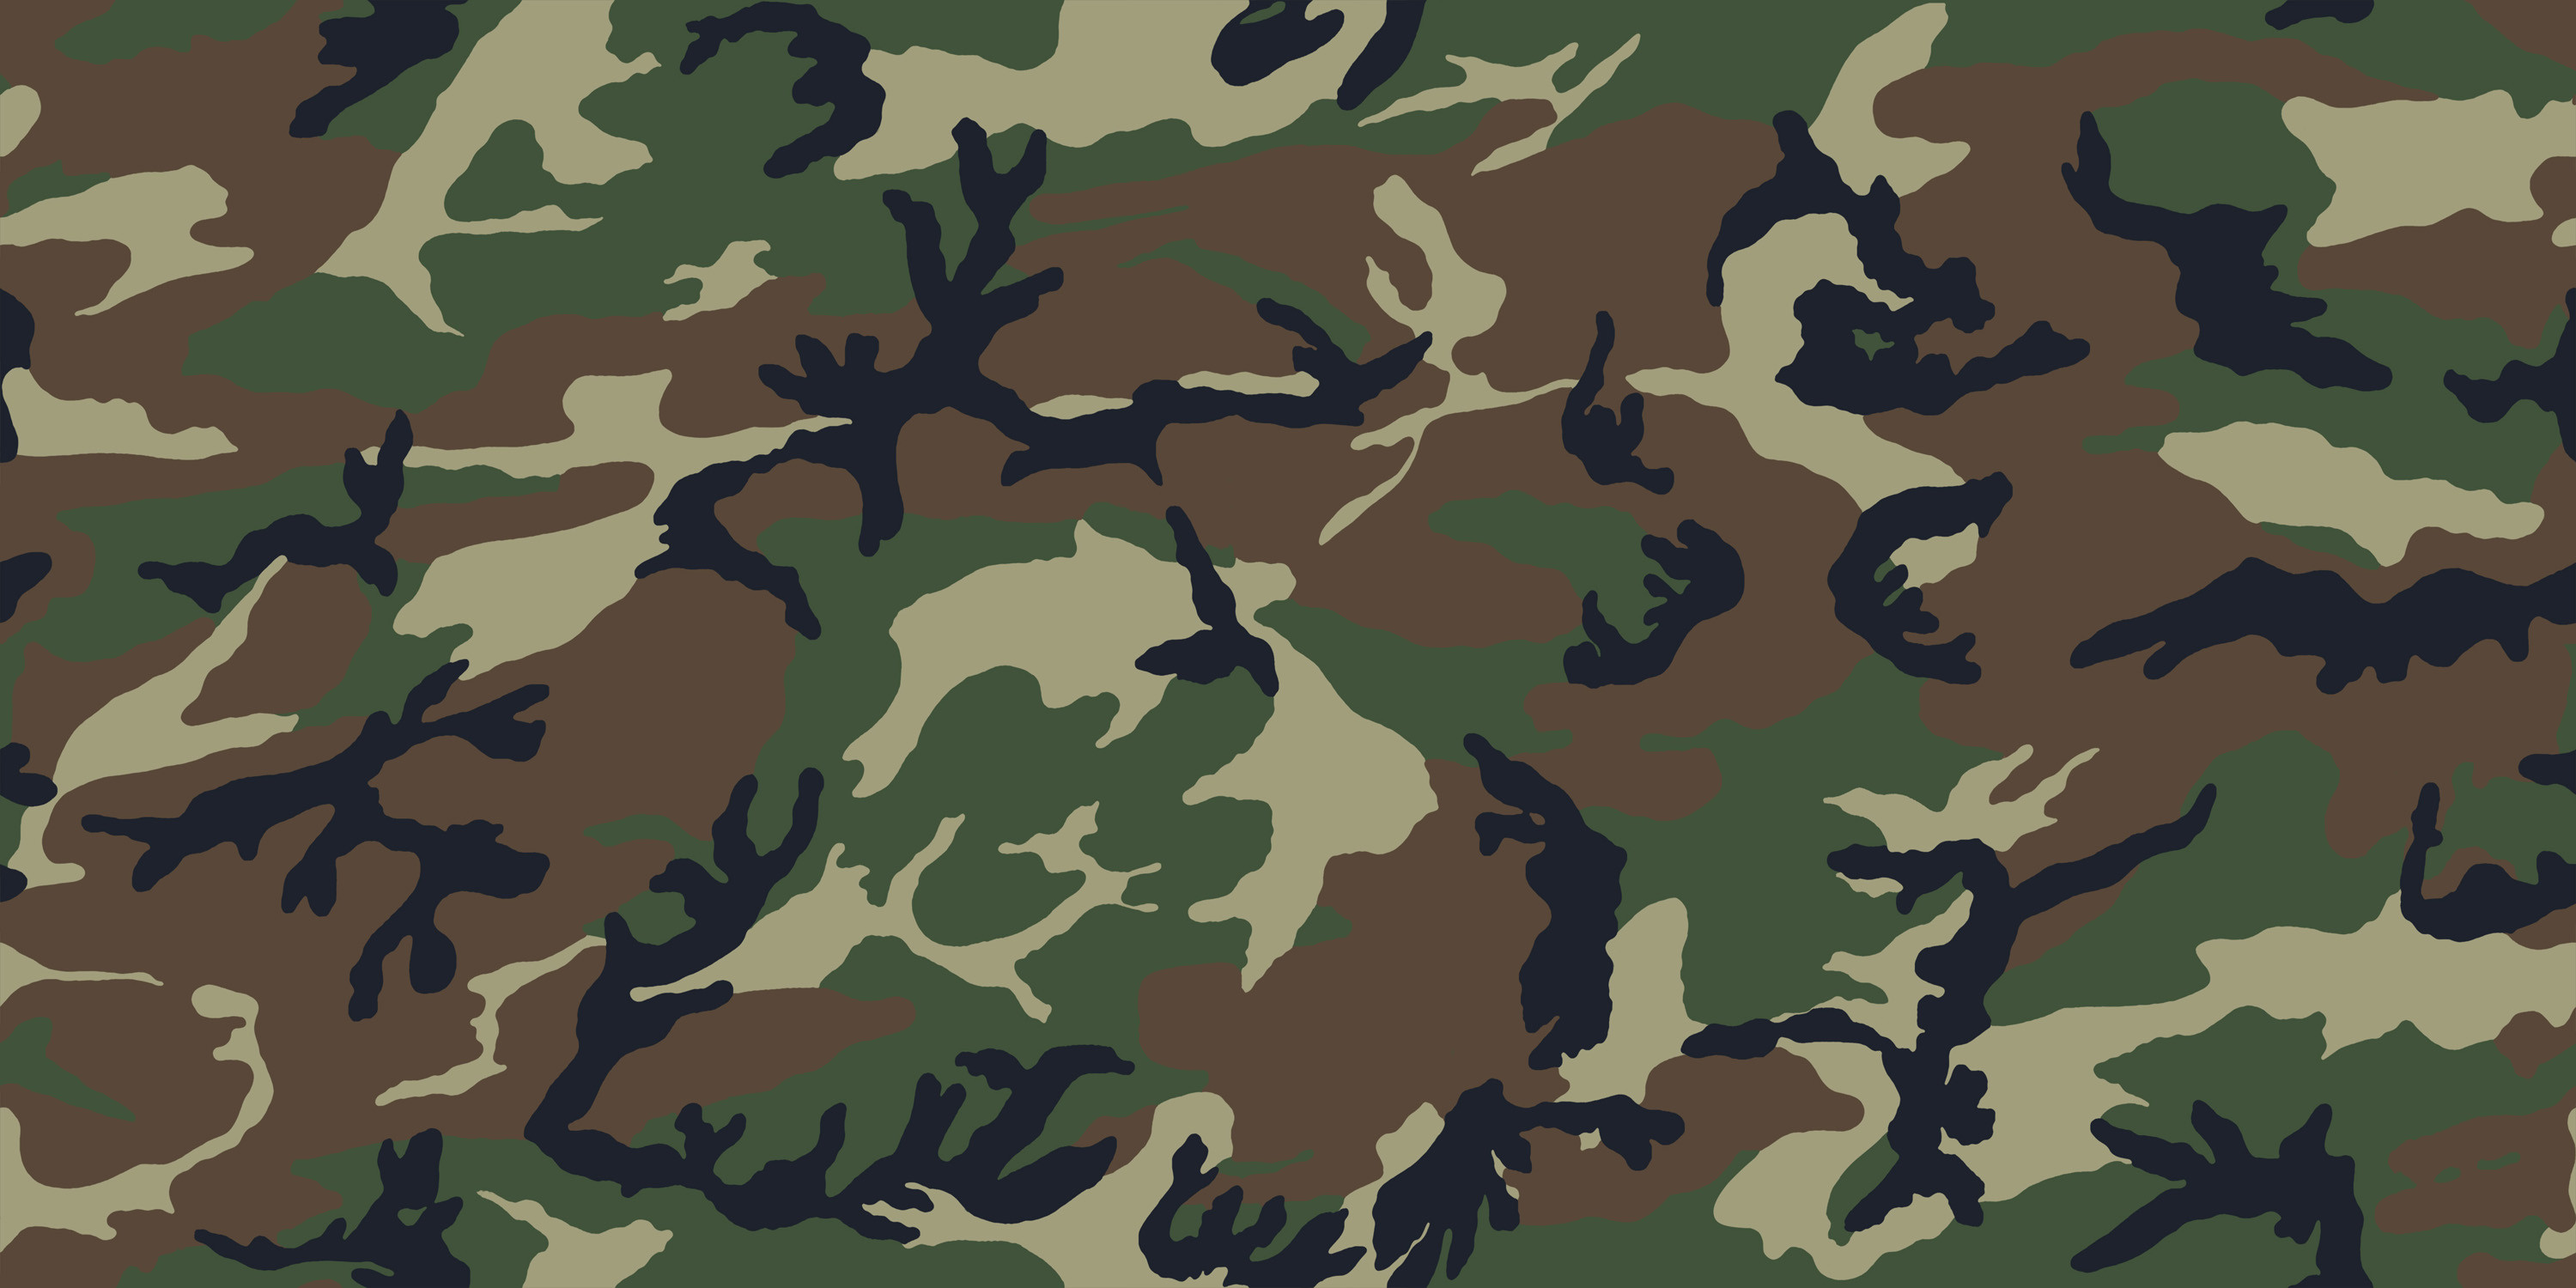 3000x1500 camo wallpaper keys. Â«Â«